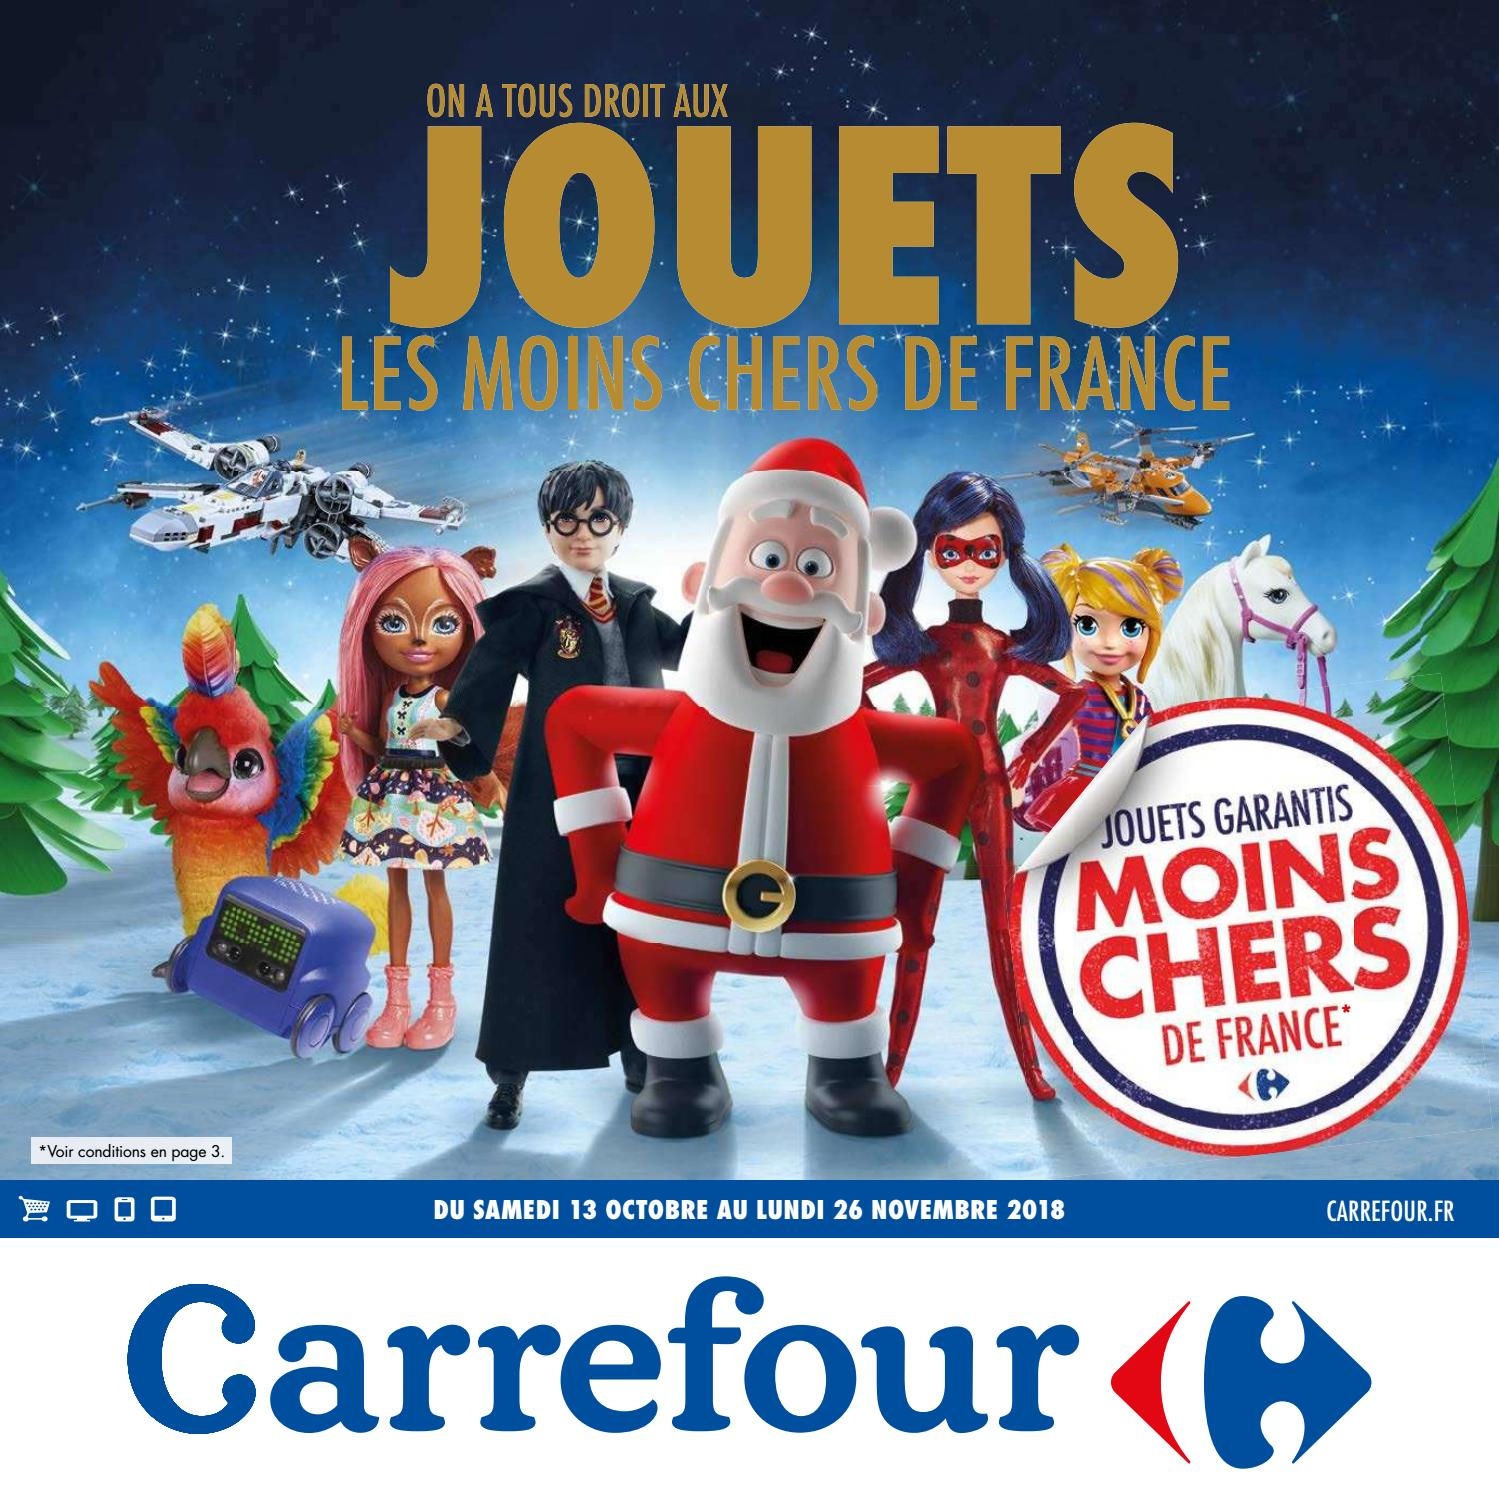 Catalogue Jouets Noël 2018 Carrefour By Yvernault Issuu